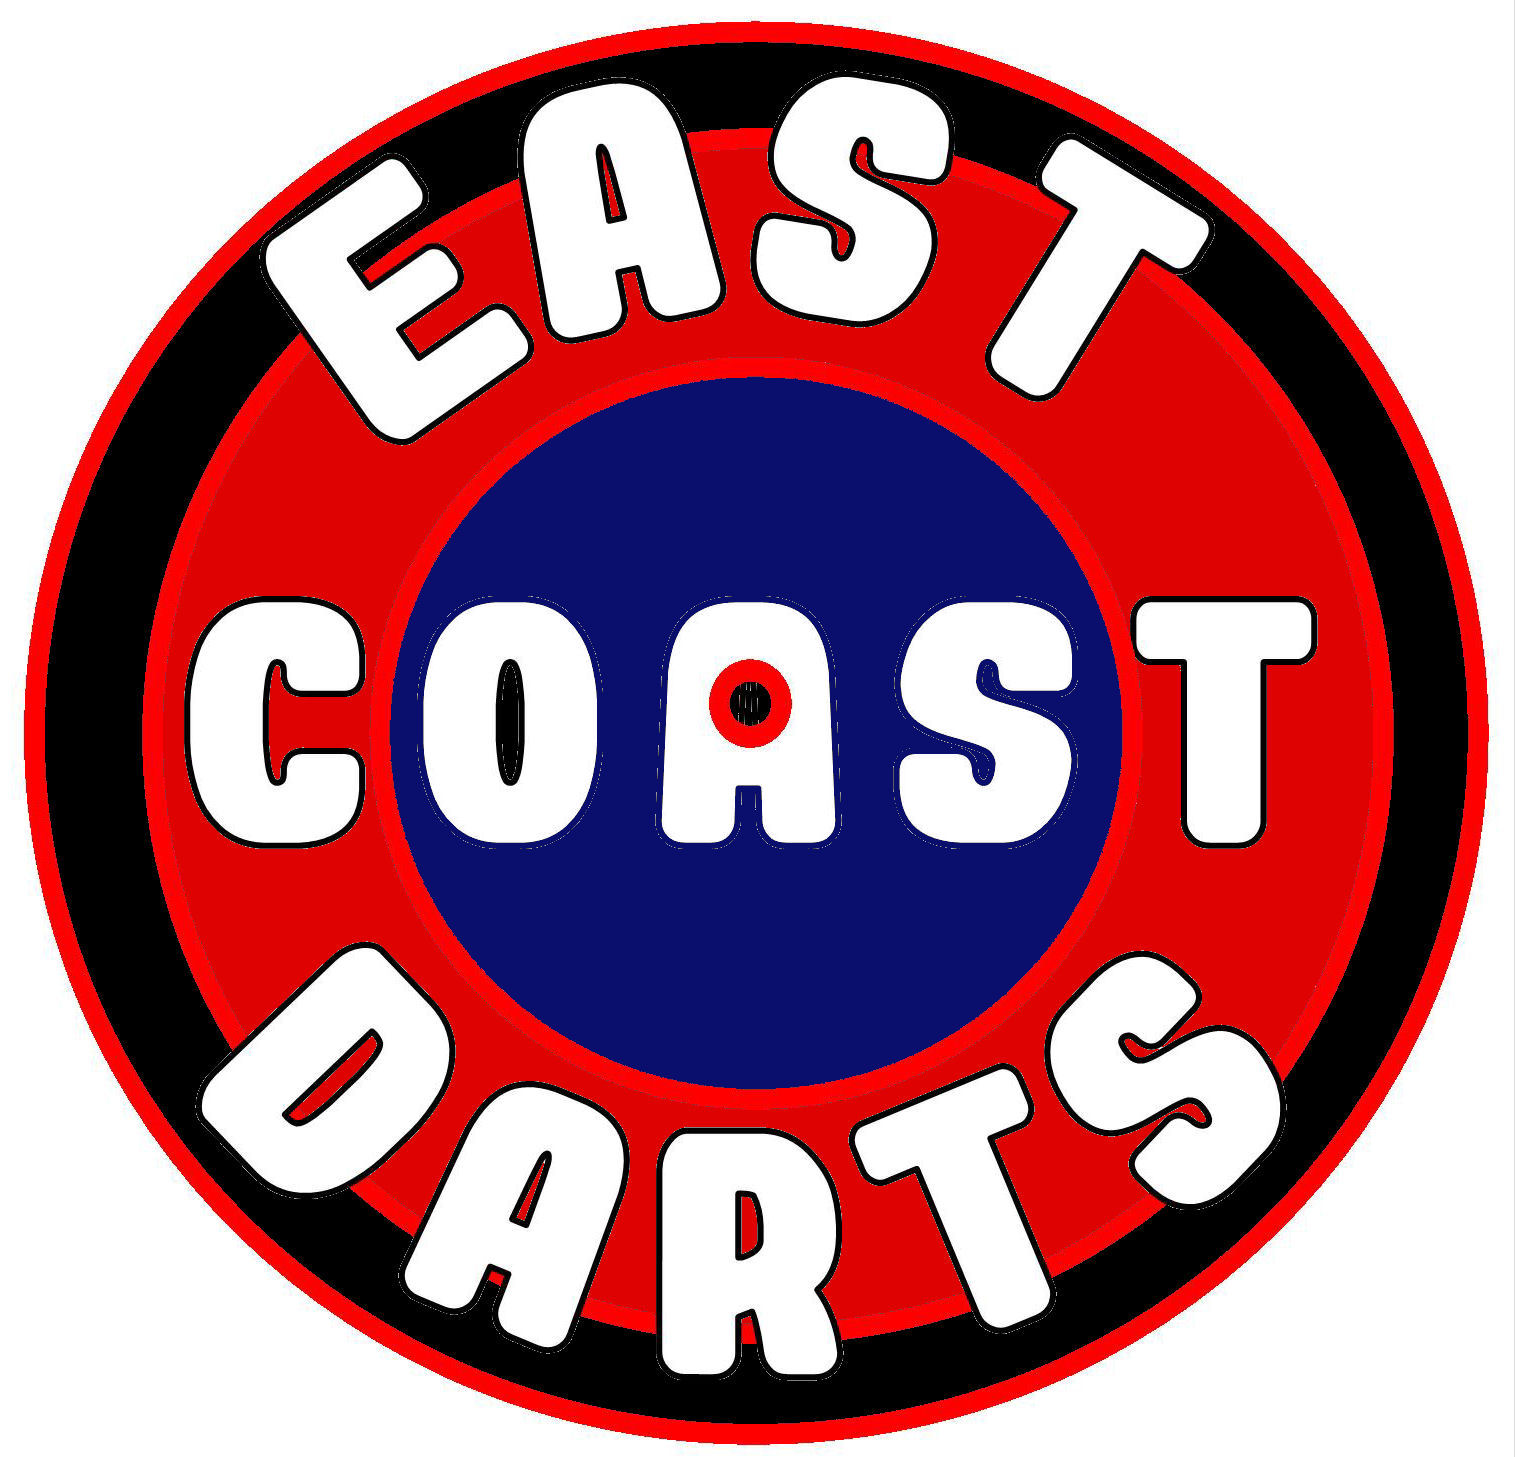 the home of darts